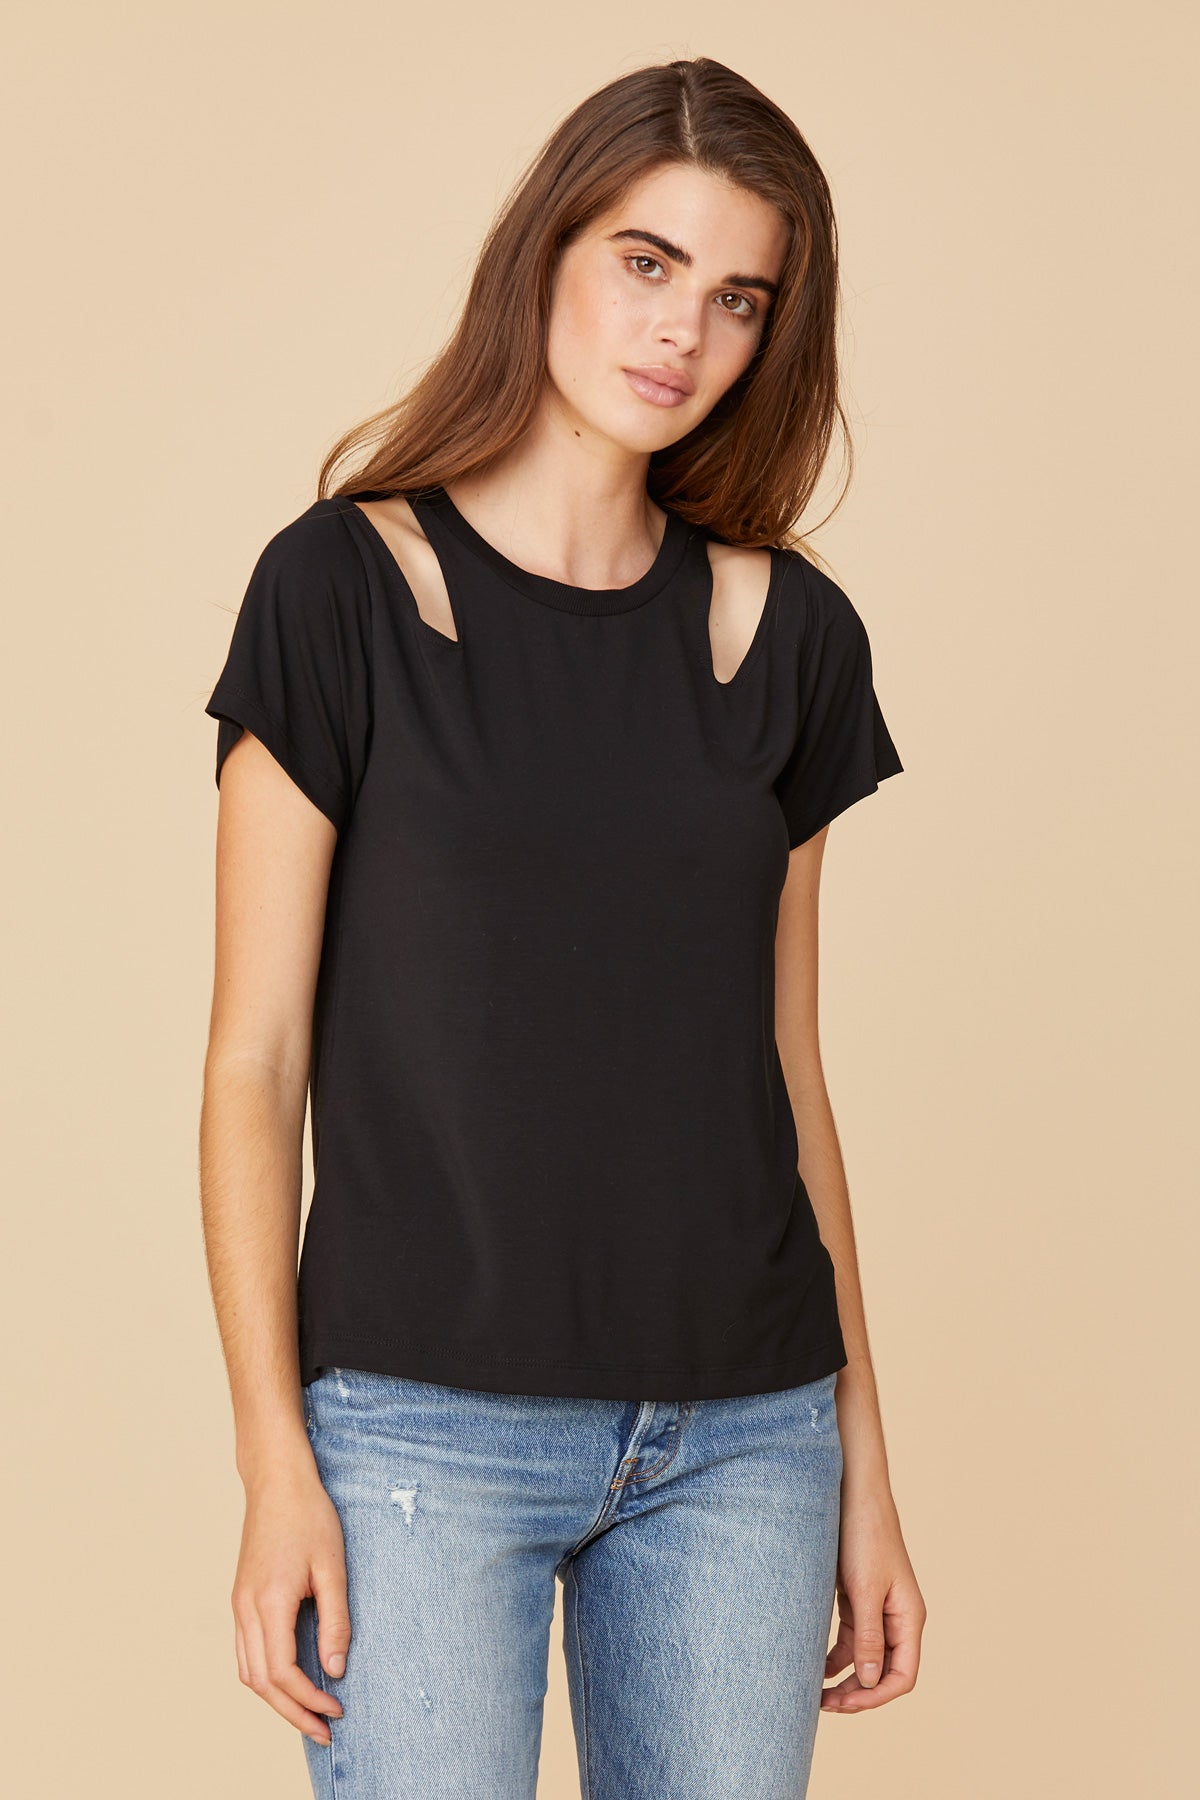 LNA Jesse Shoulder Cut Out Tee in black